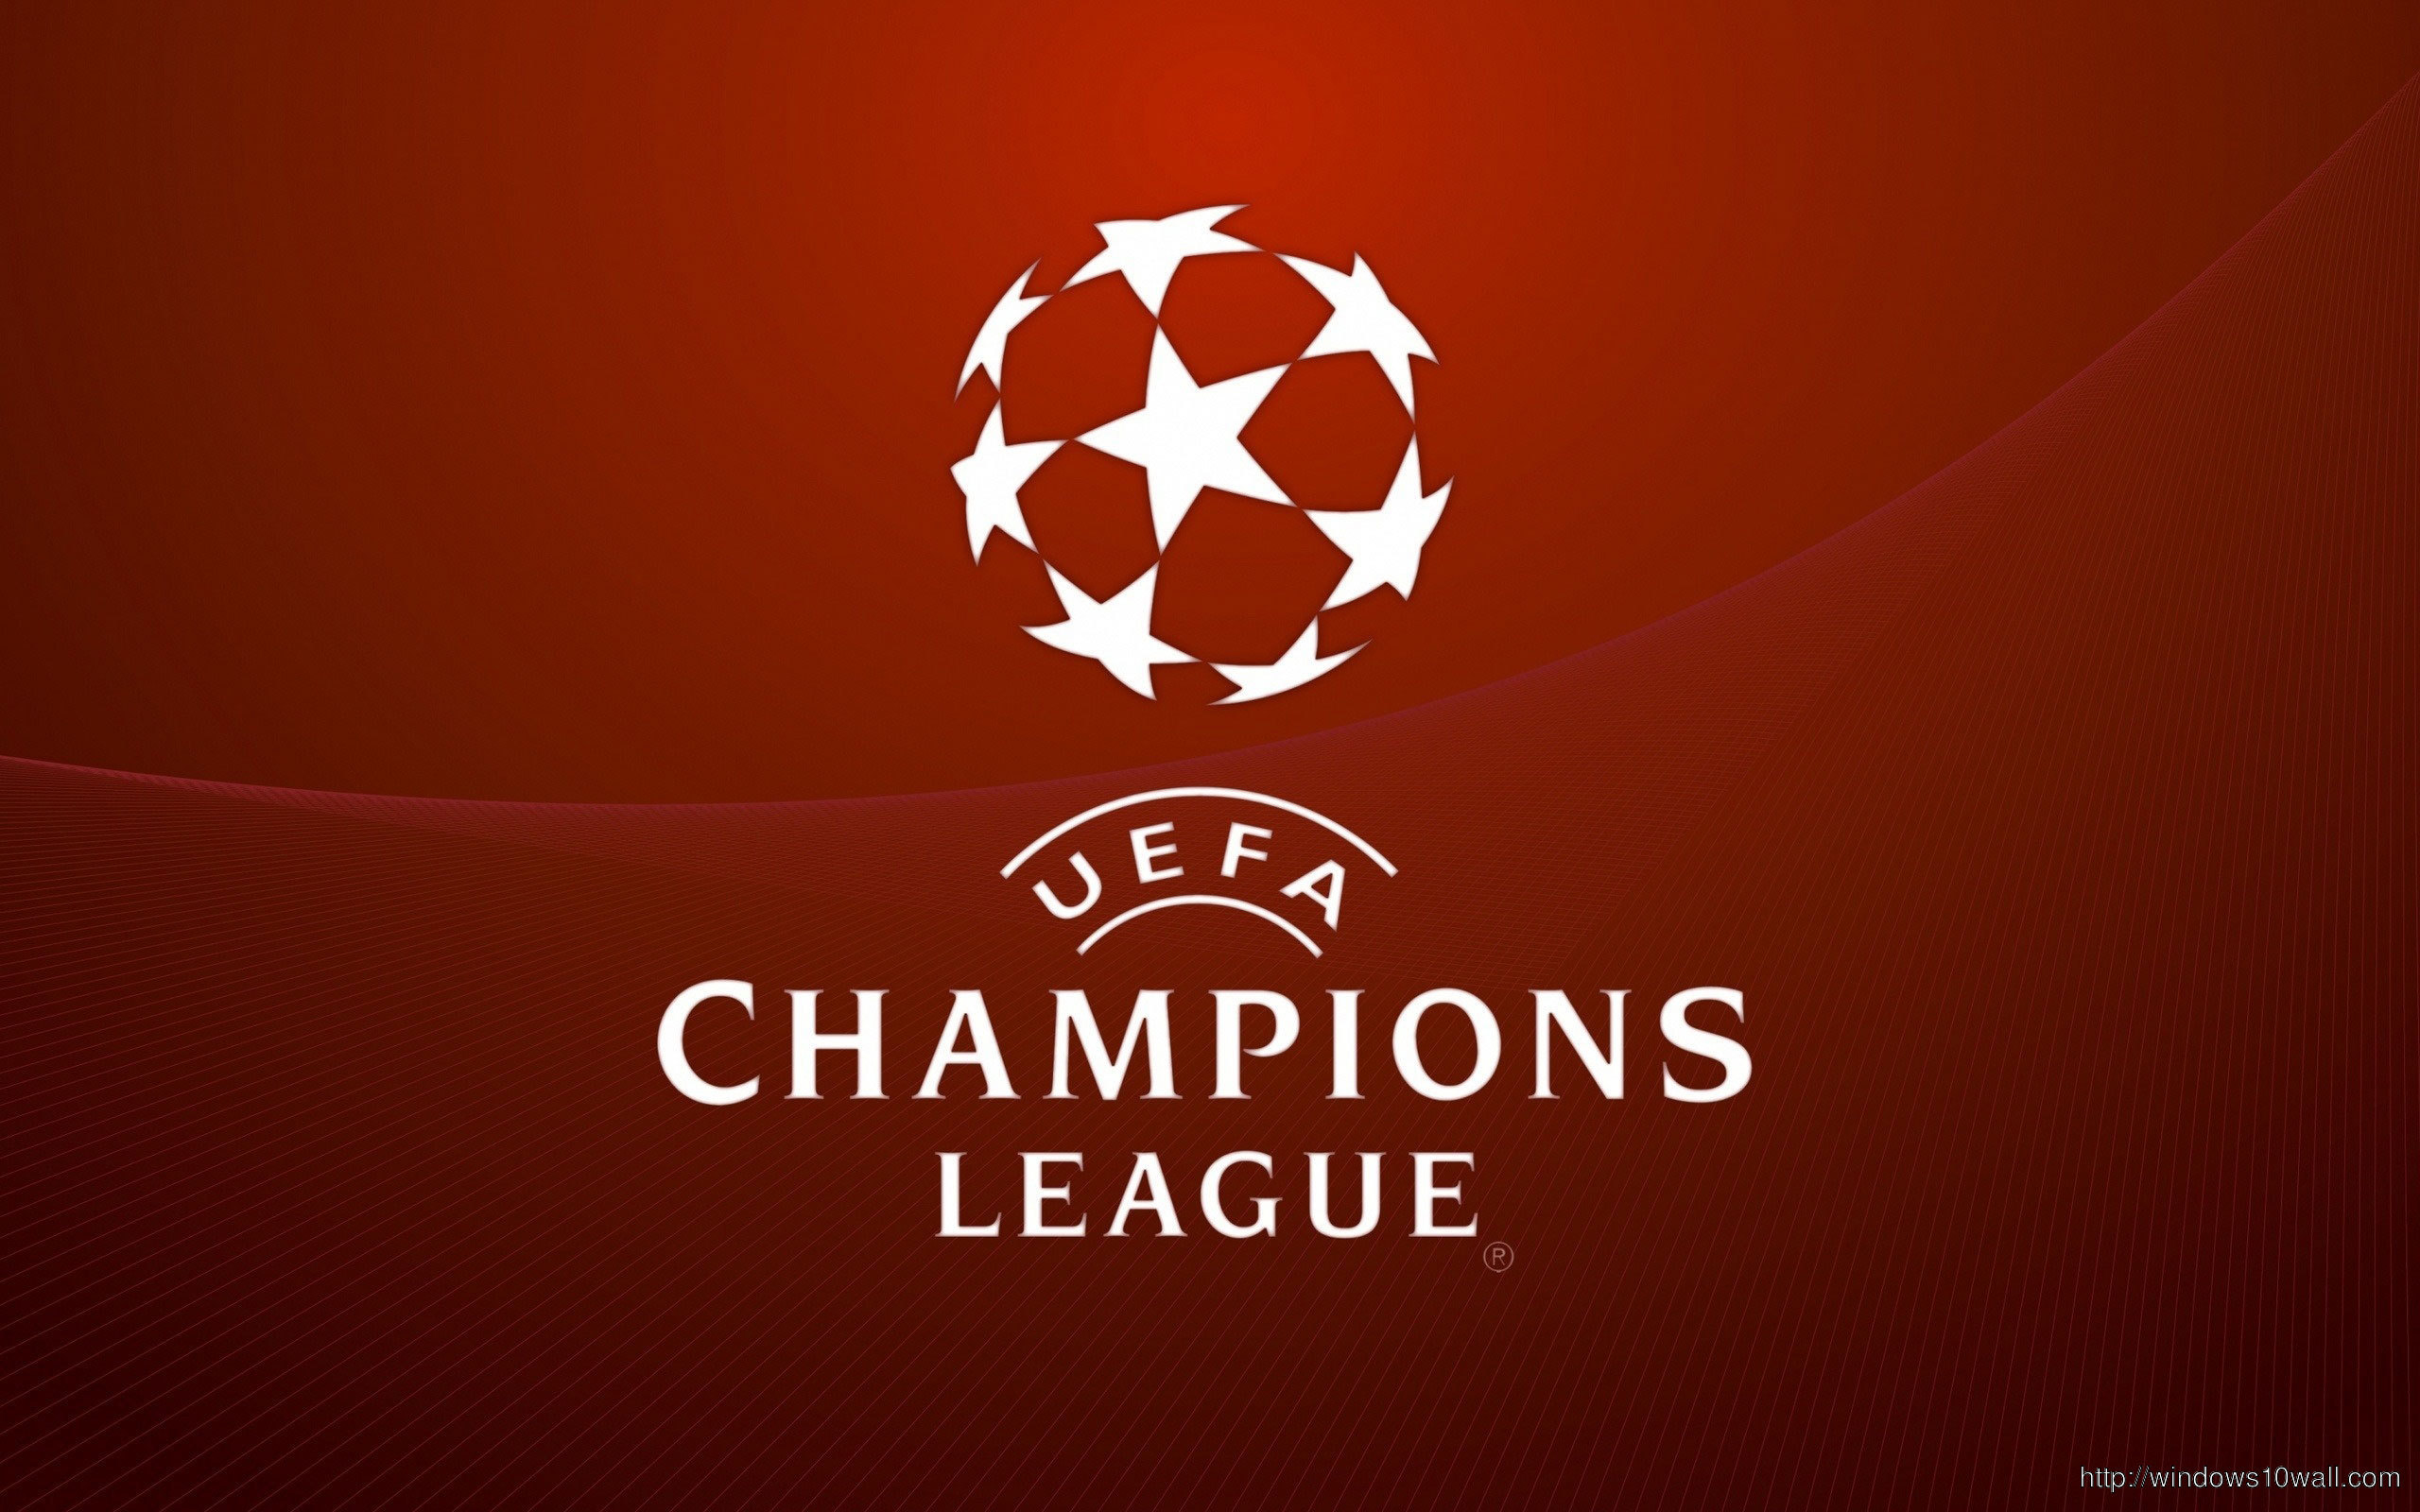 red-uefa-champions-league-logo-wallpaper